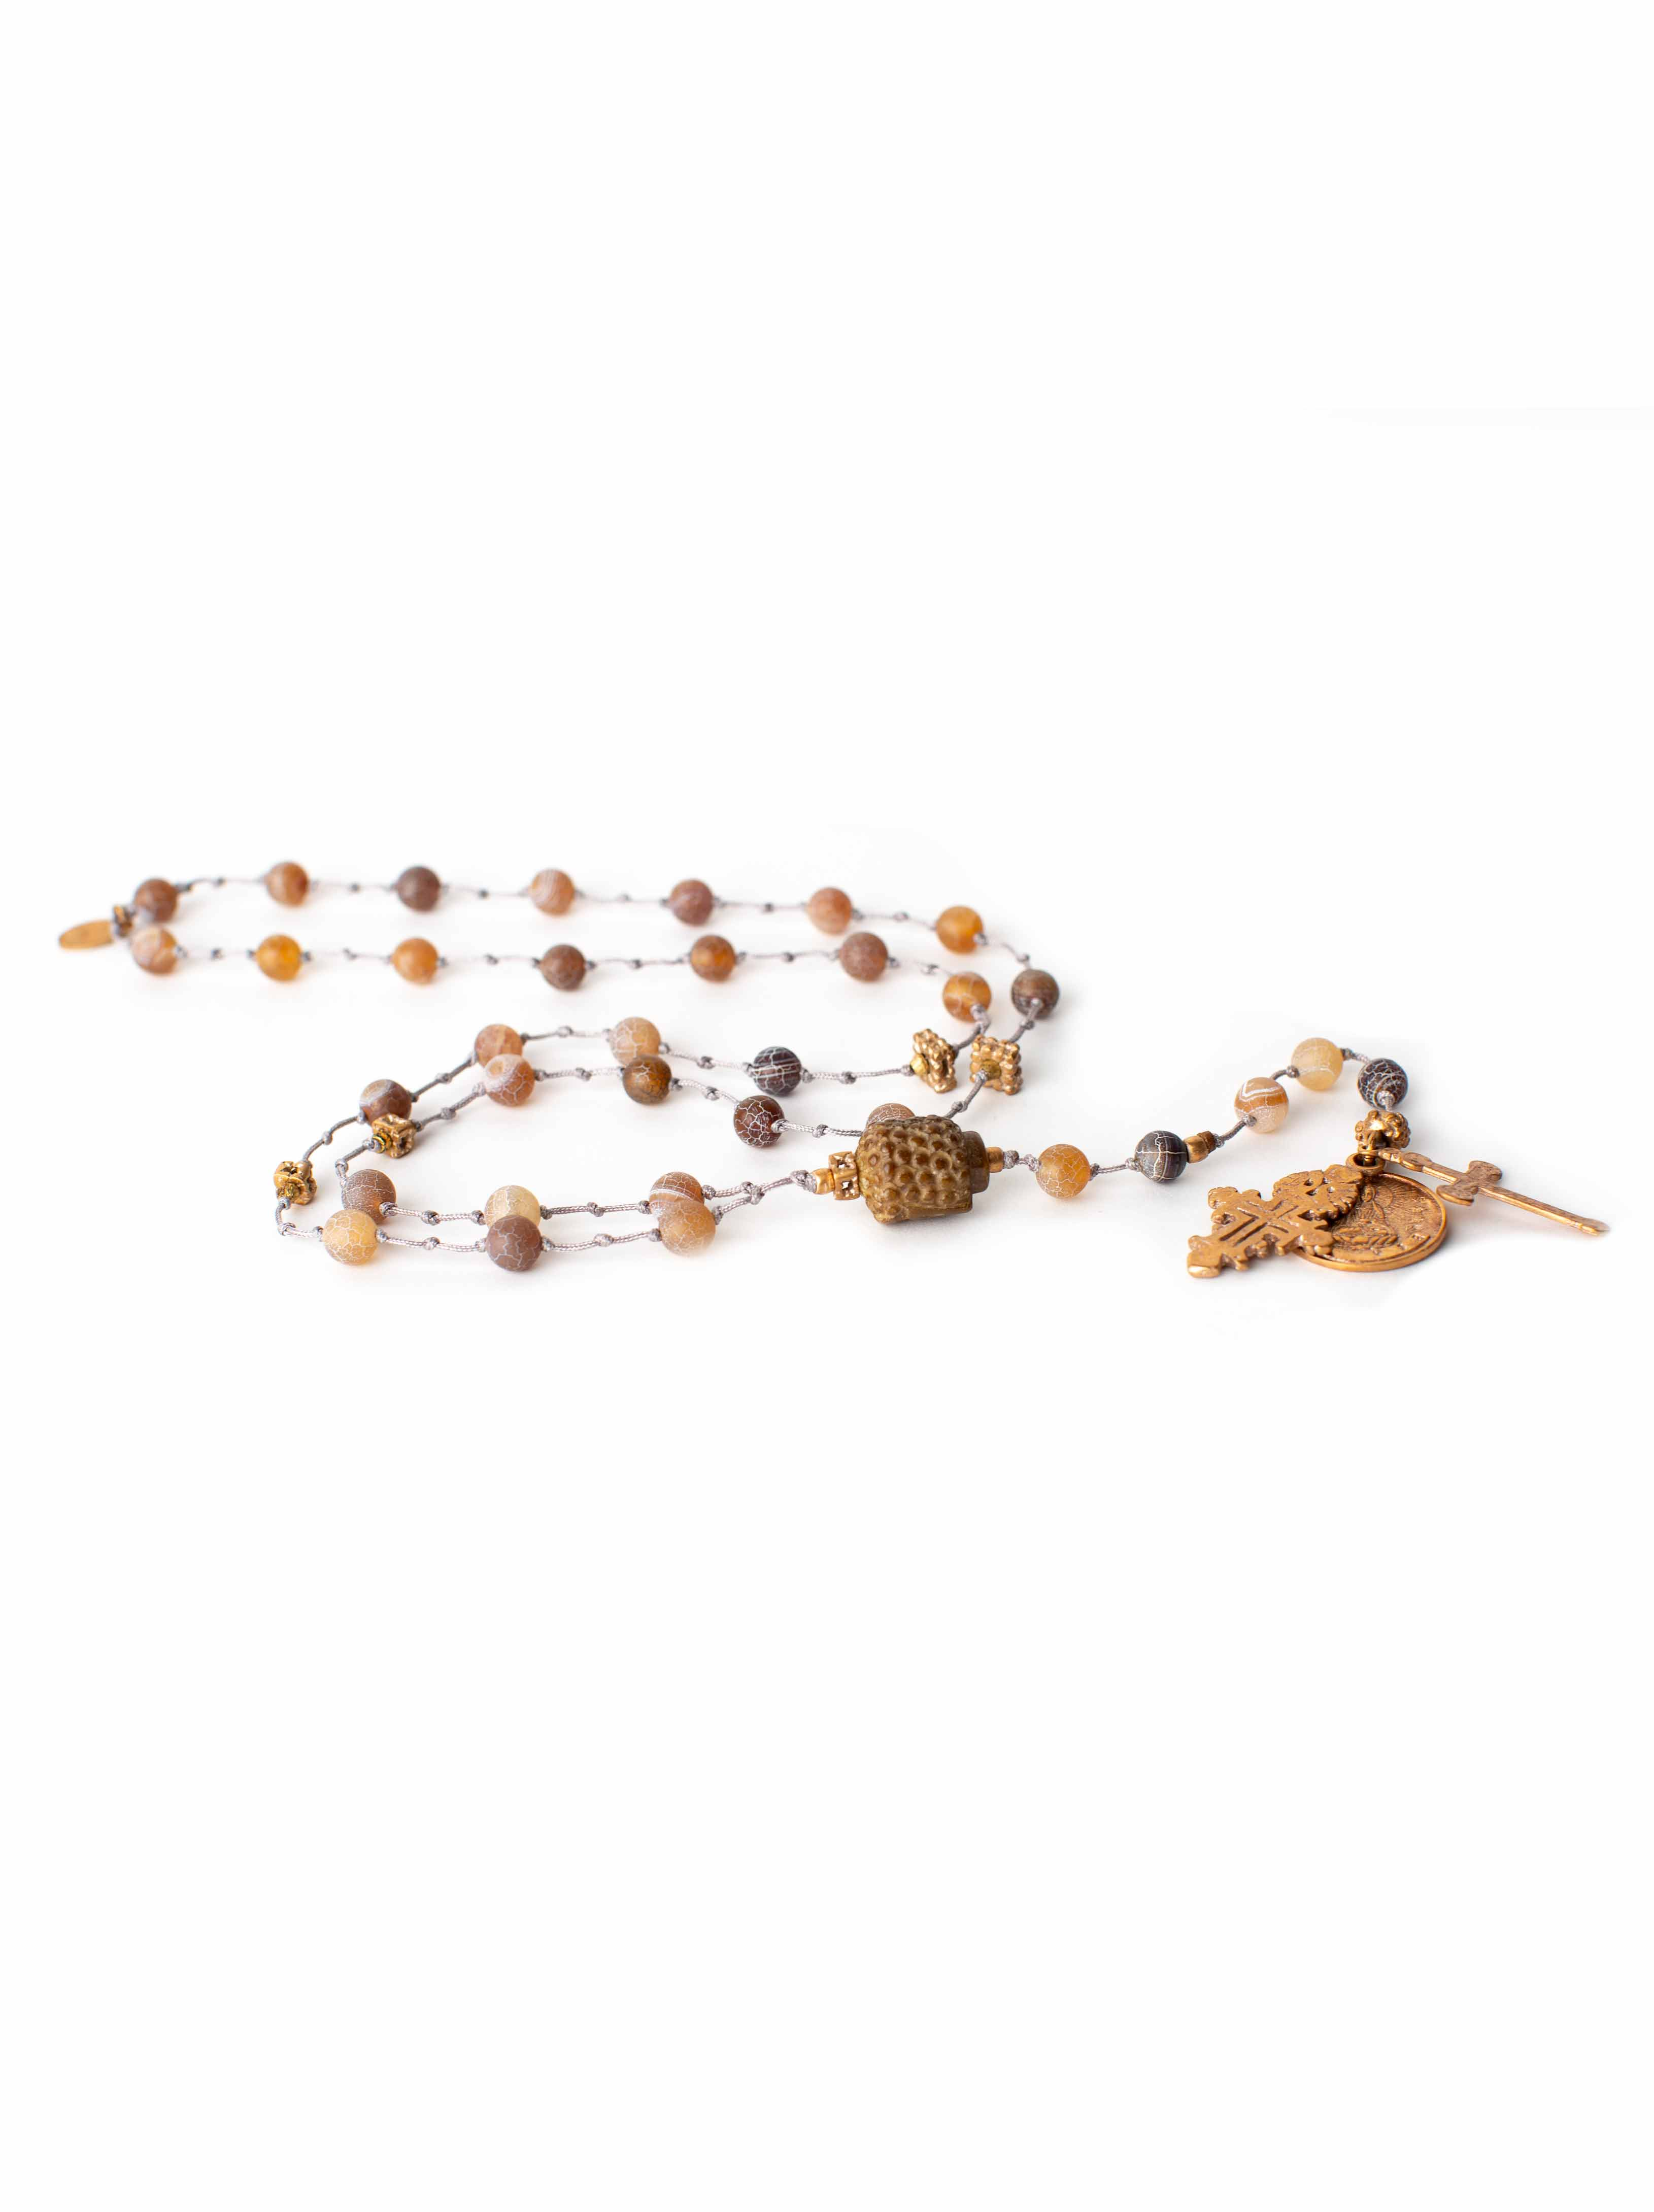 Jade and agate Rosary